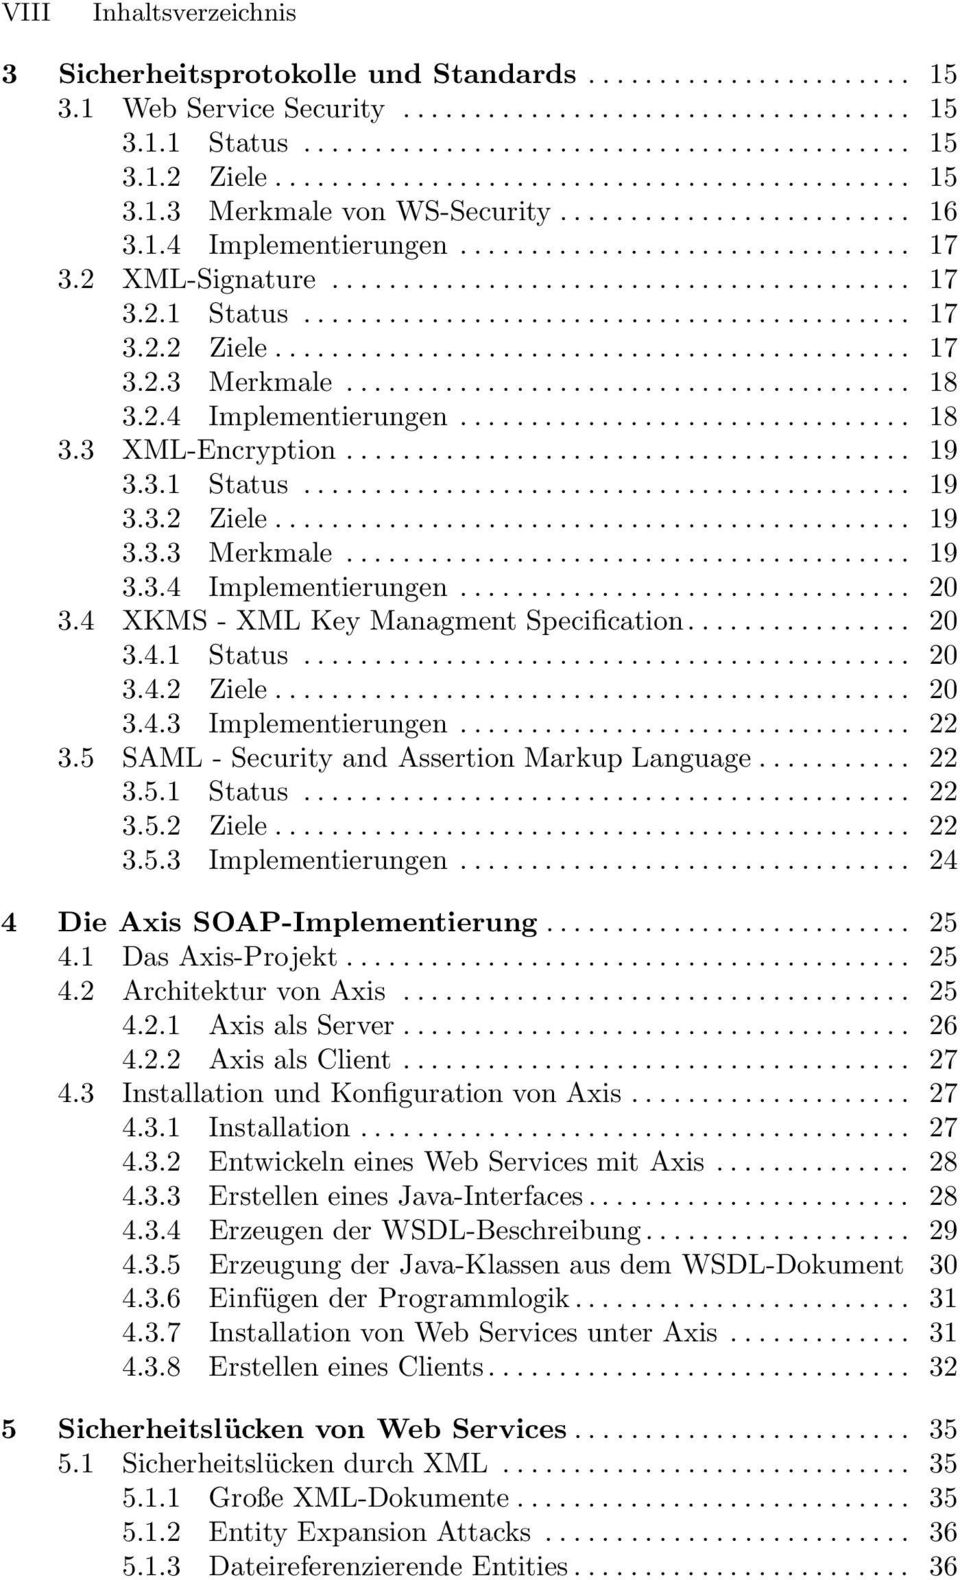 4 XKMS-XMLKeyManagmentSpecification... 20 3.4.1 Status... 20 3.4.2 Ziele... 20 3.4.3 Implementierungen... 22 3.5 SAML - Security and Assertion Markup Language........... 22 3.5.1 Status... 22 3.5.2 Ziele... 22 3.5.3 Implementierungen... 24 4 Die Axis SOAP-Implementierung.